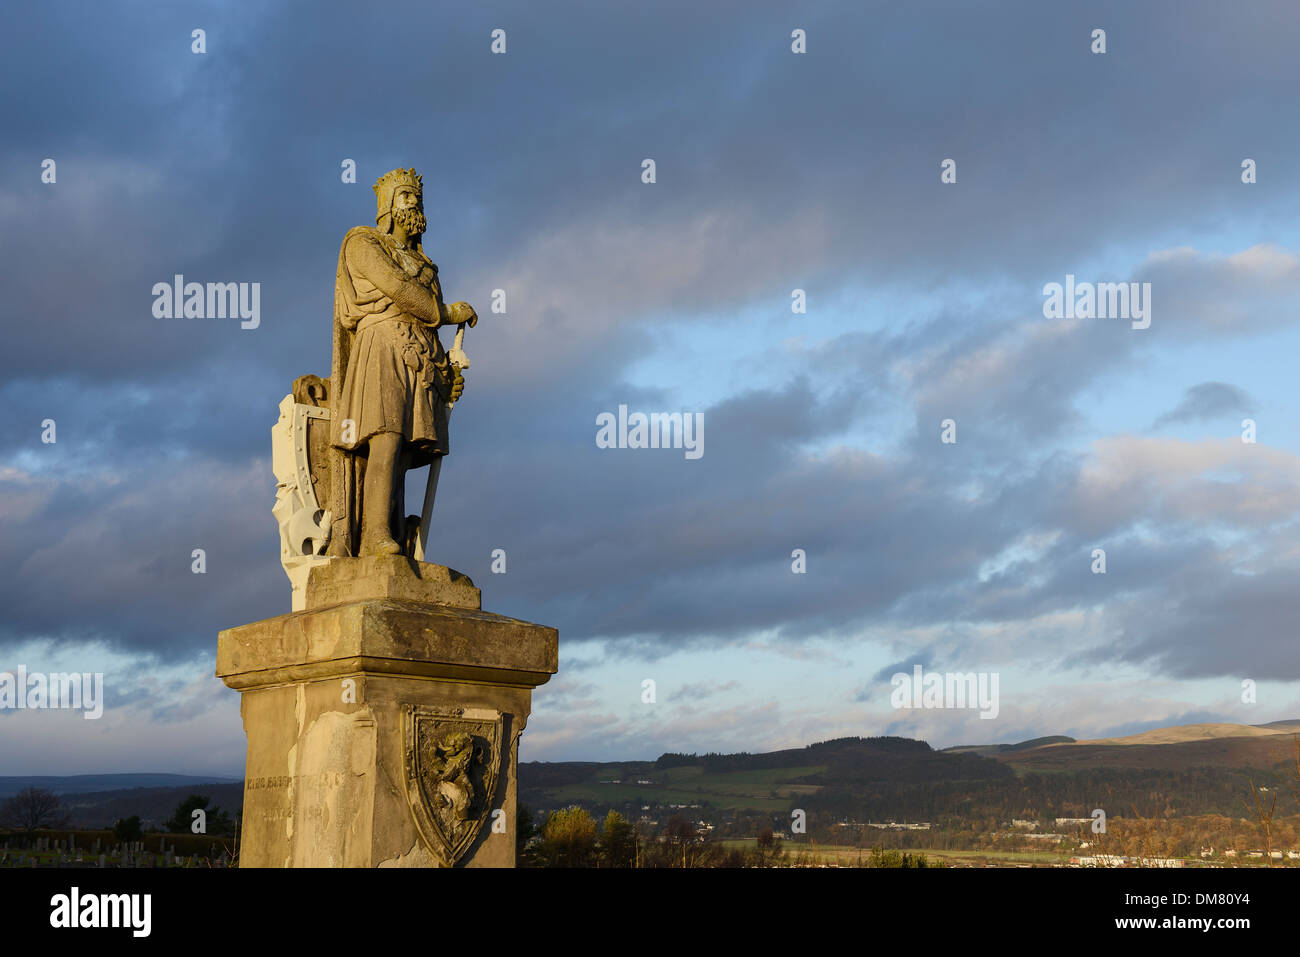 Statue of Robert the Bruce outside Stirling Castle in Scotland Stock Photo